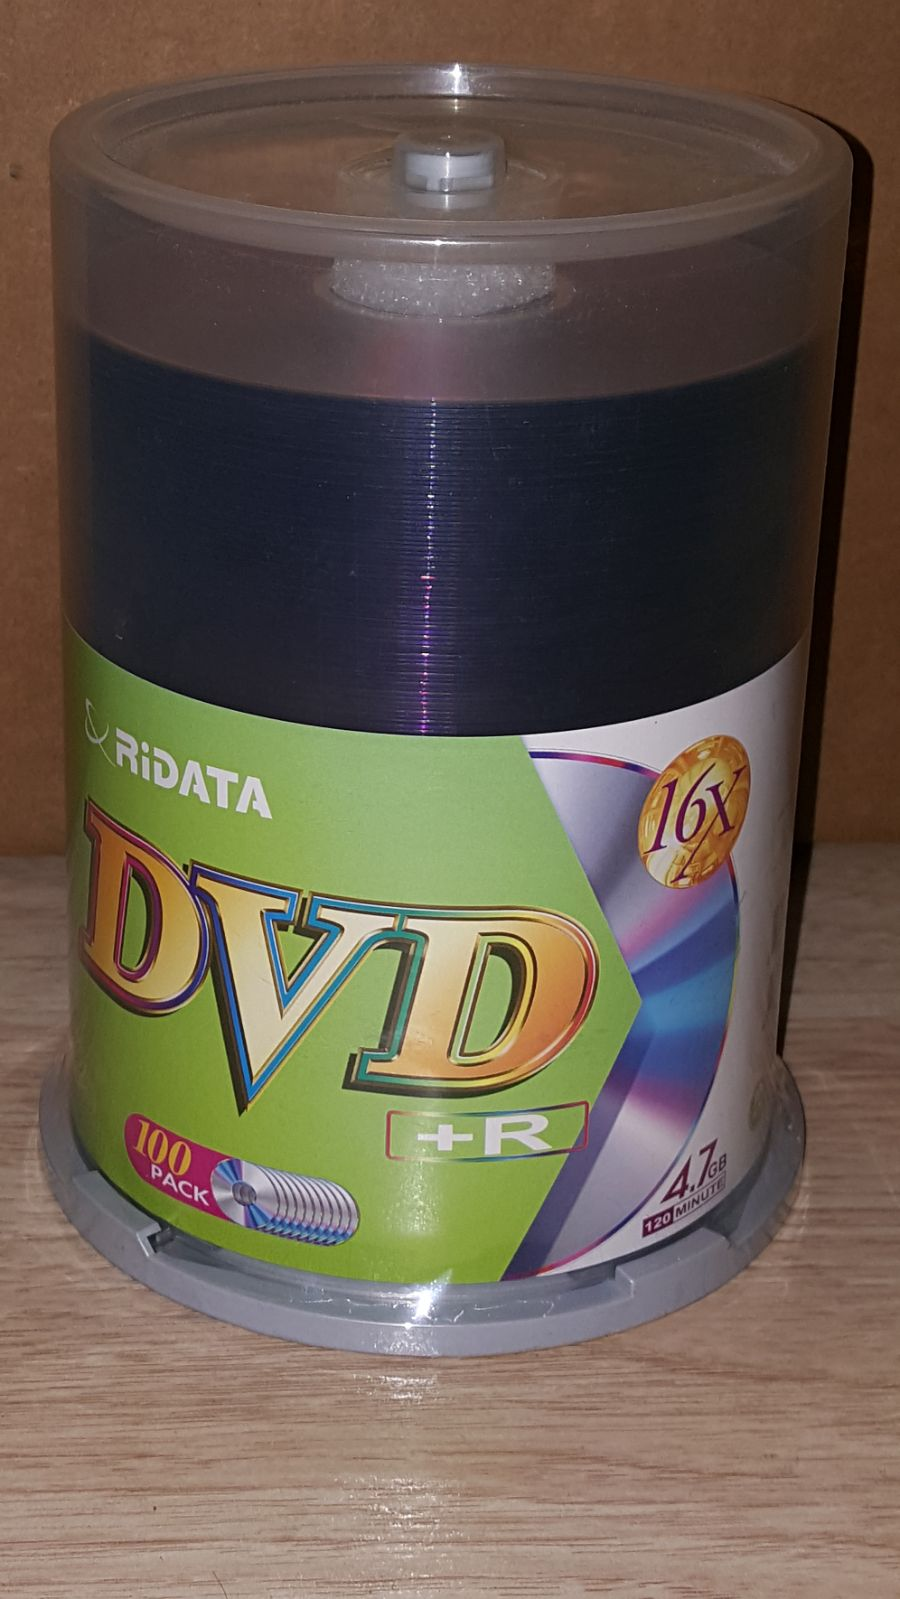 Ridata DVD +R 100 Packs 16x -4.7GB